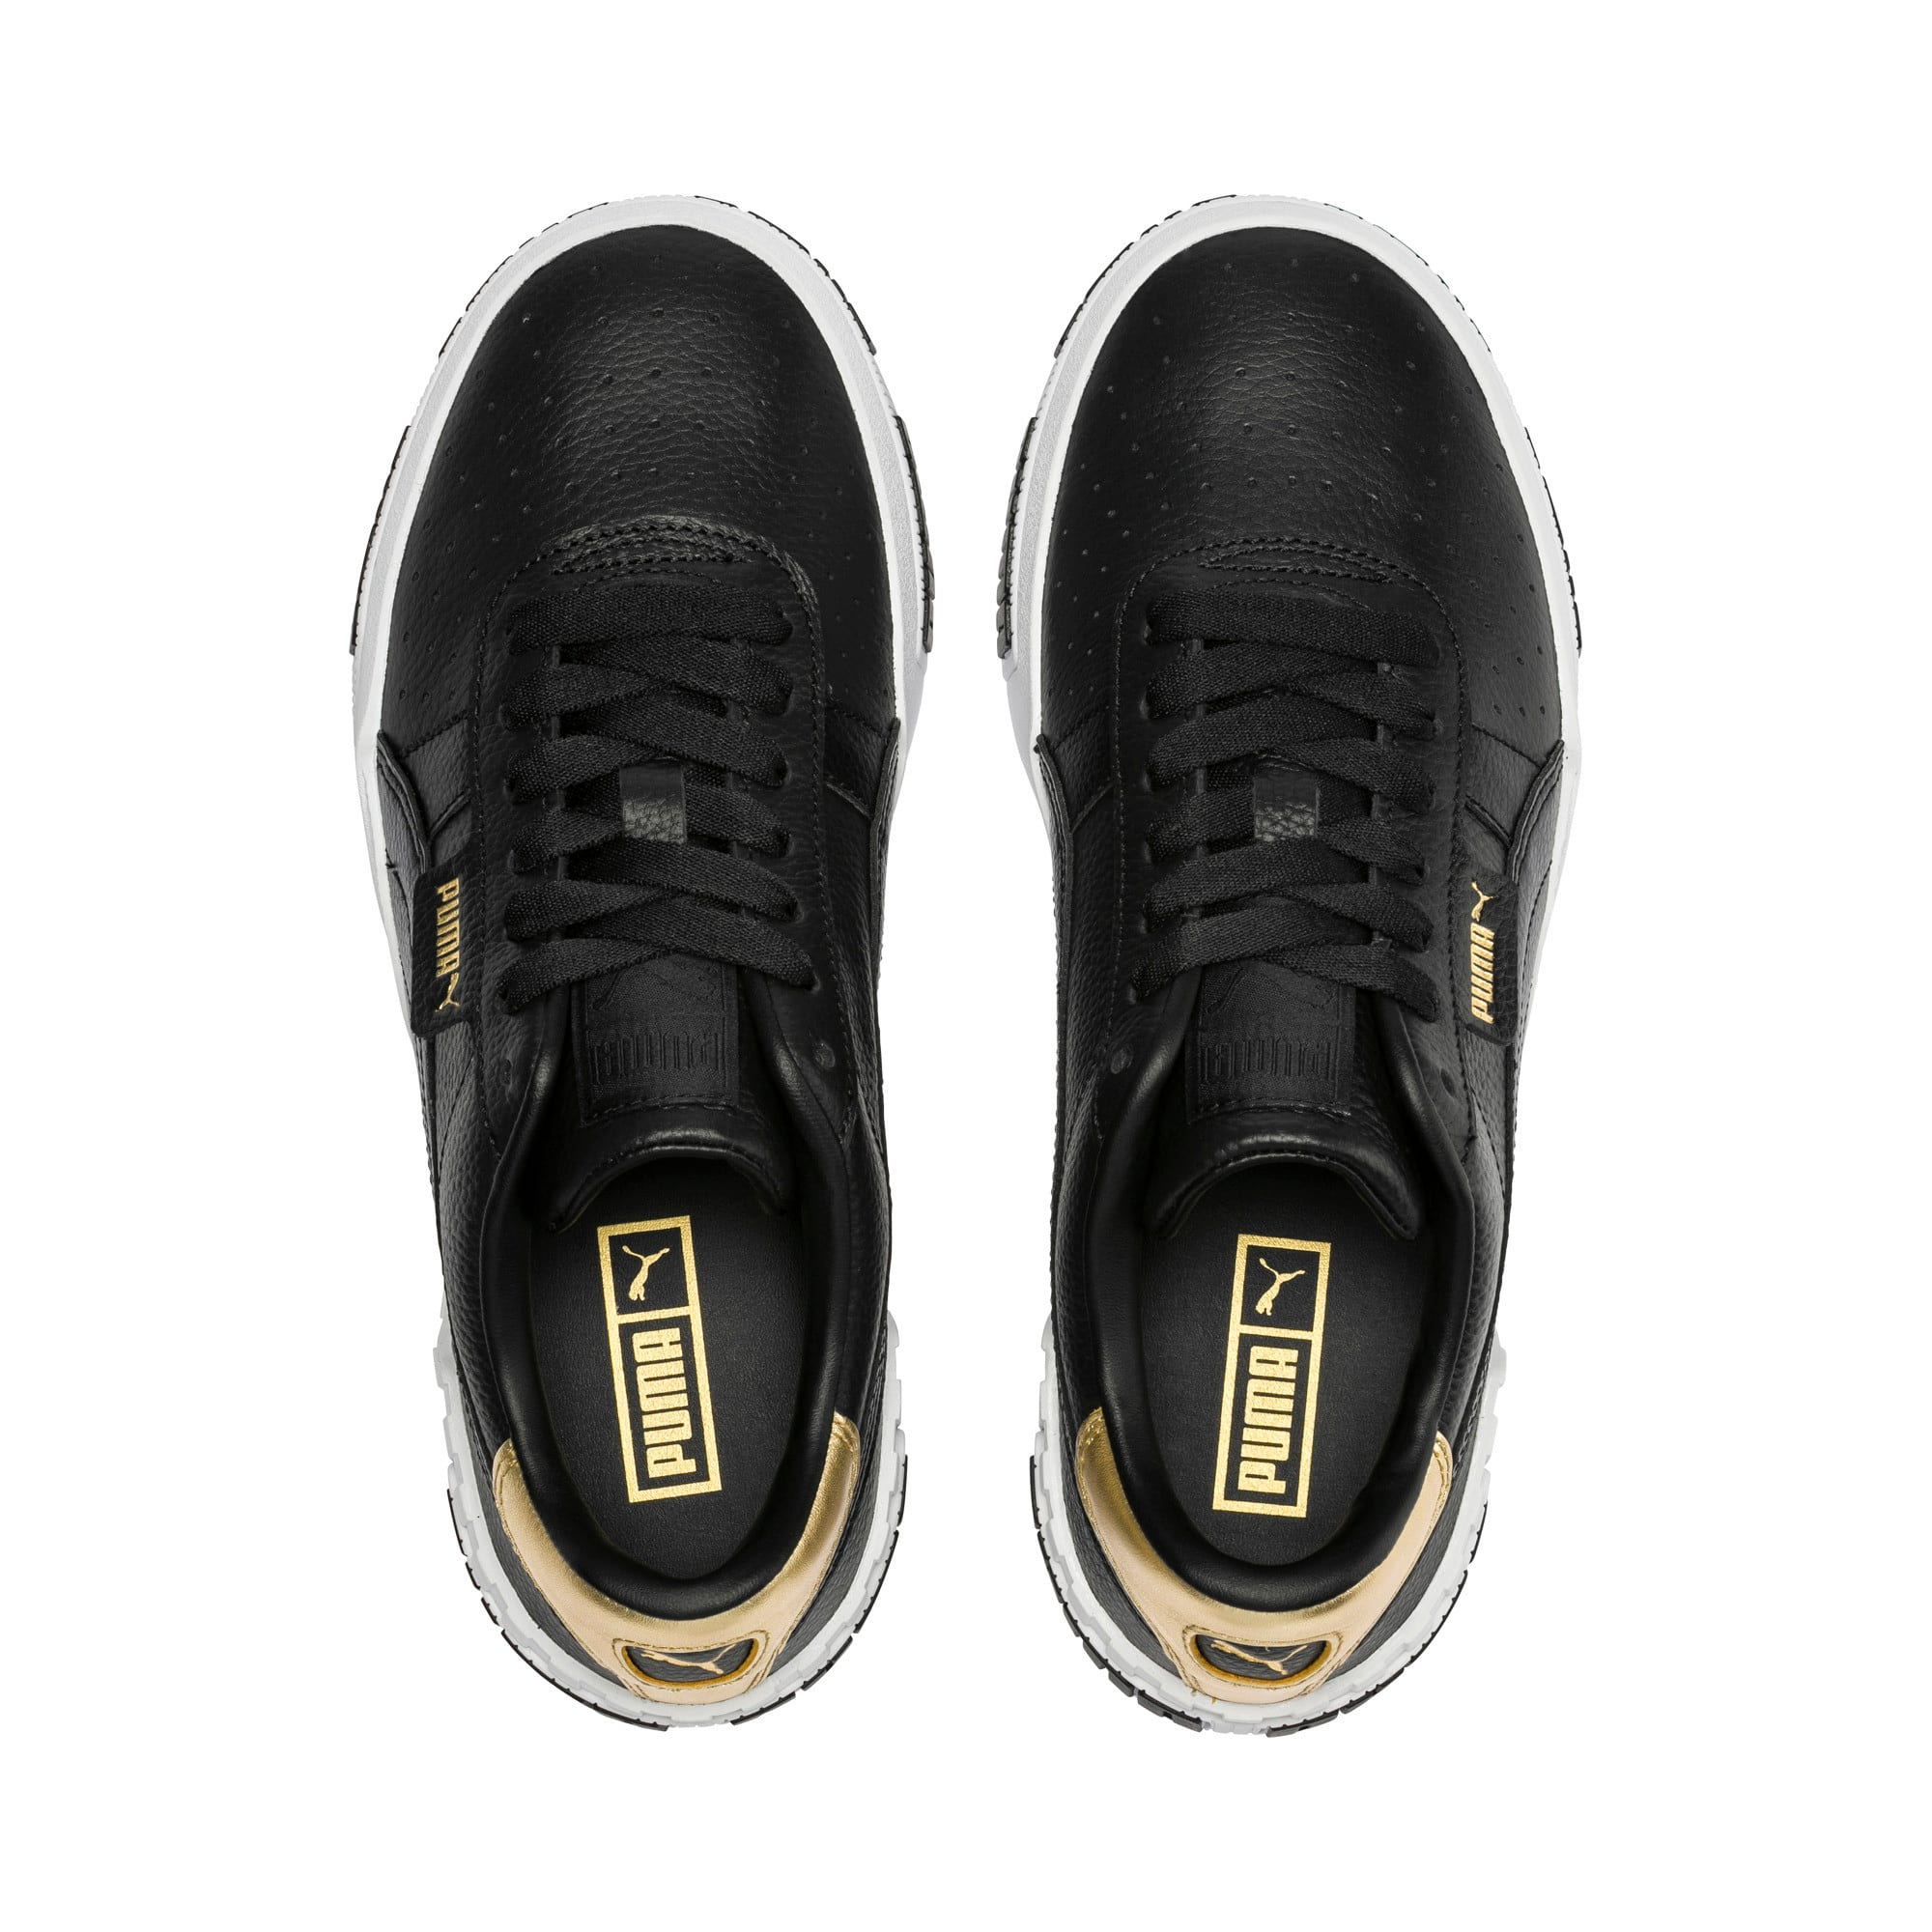 Thumbnail 6 of Cali Bold Metallic sportschoenen voor dames, Puma Black-Gold, medium